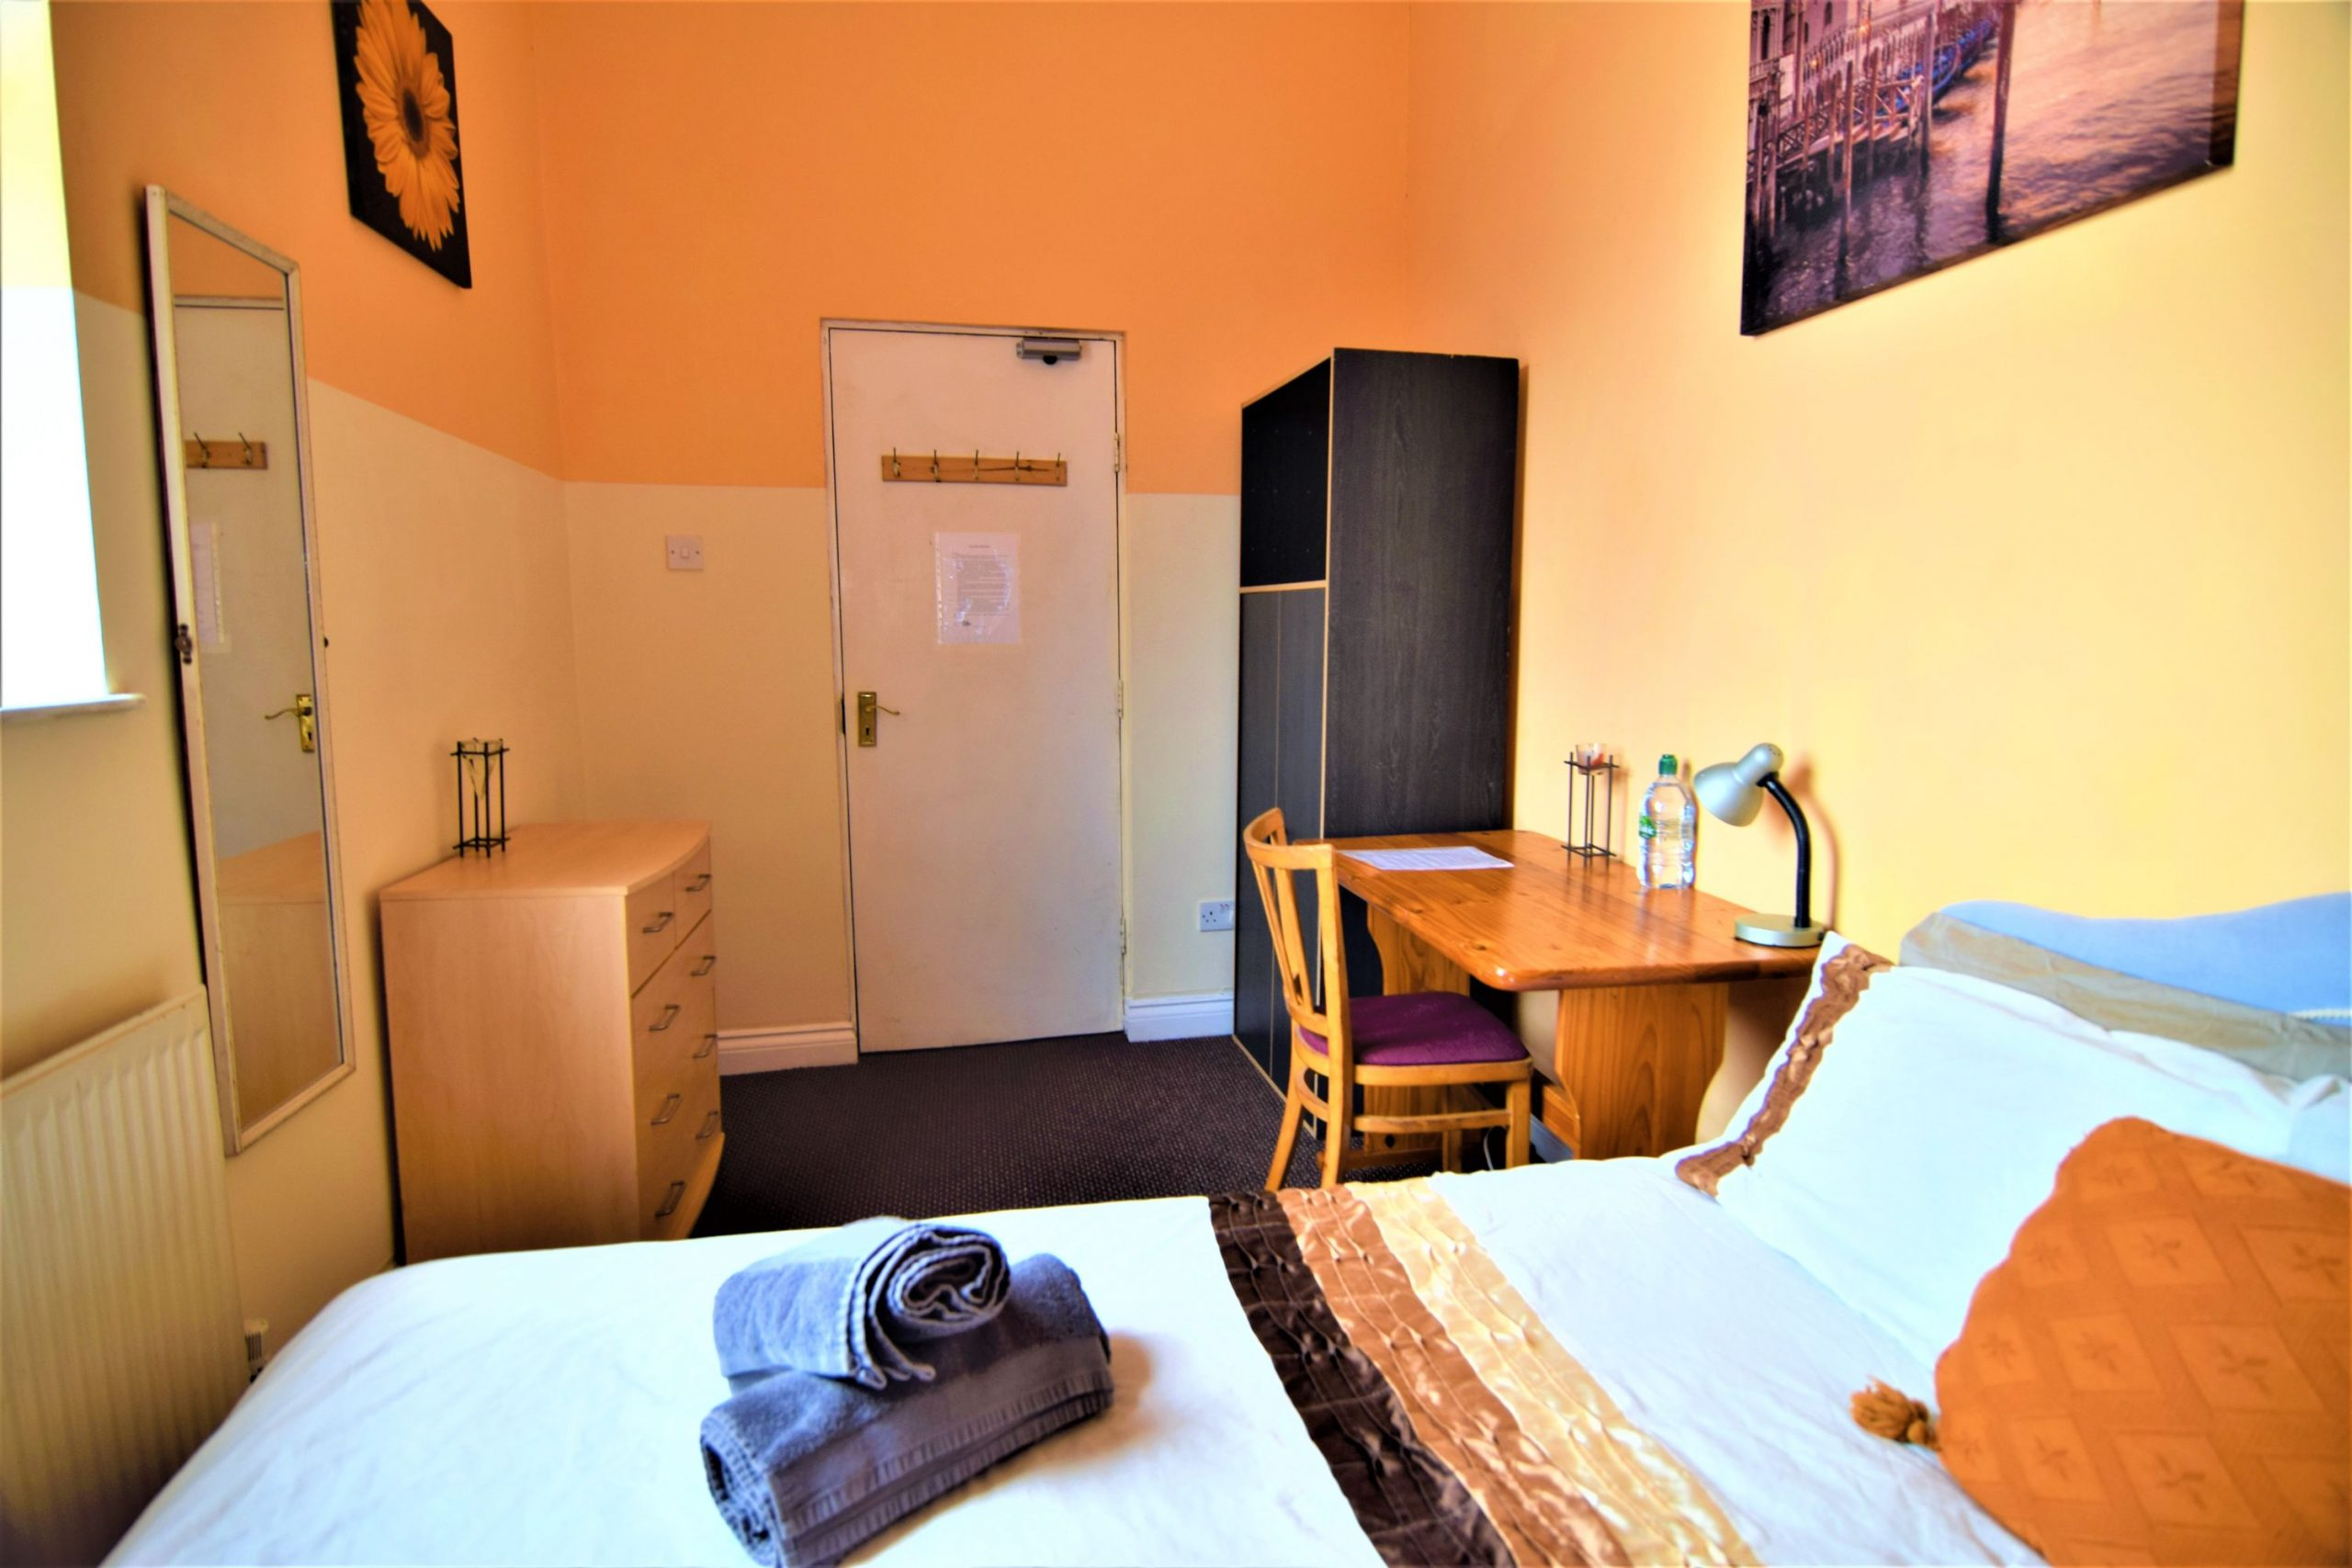 downstairs-1-private-rooms-shared-apartments-manus-place-3